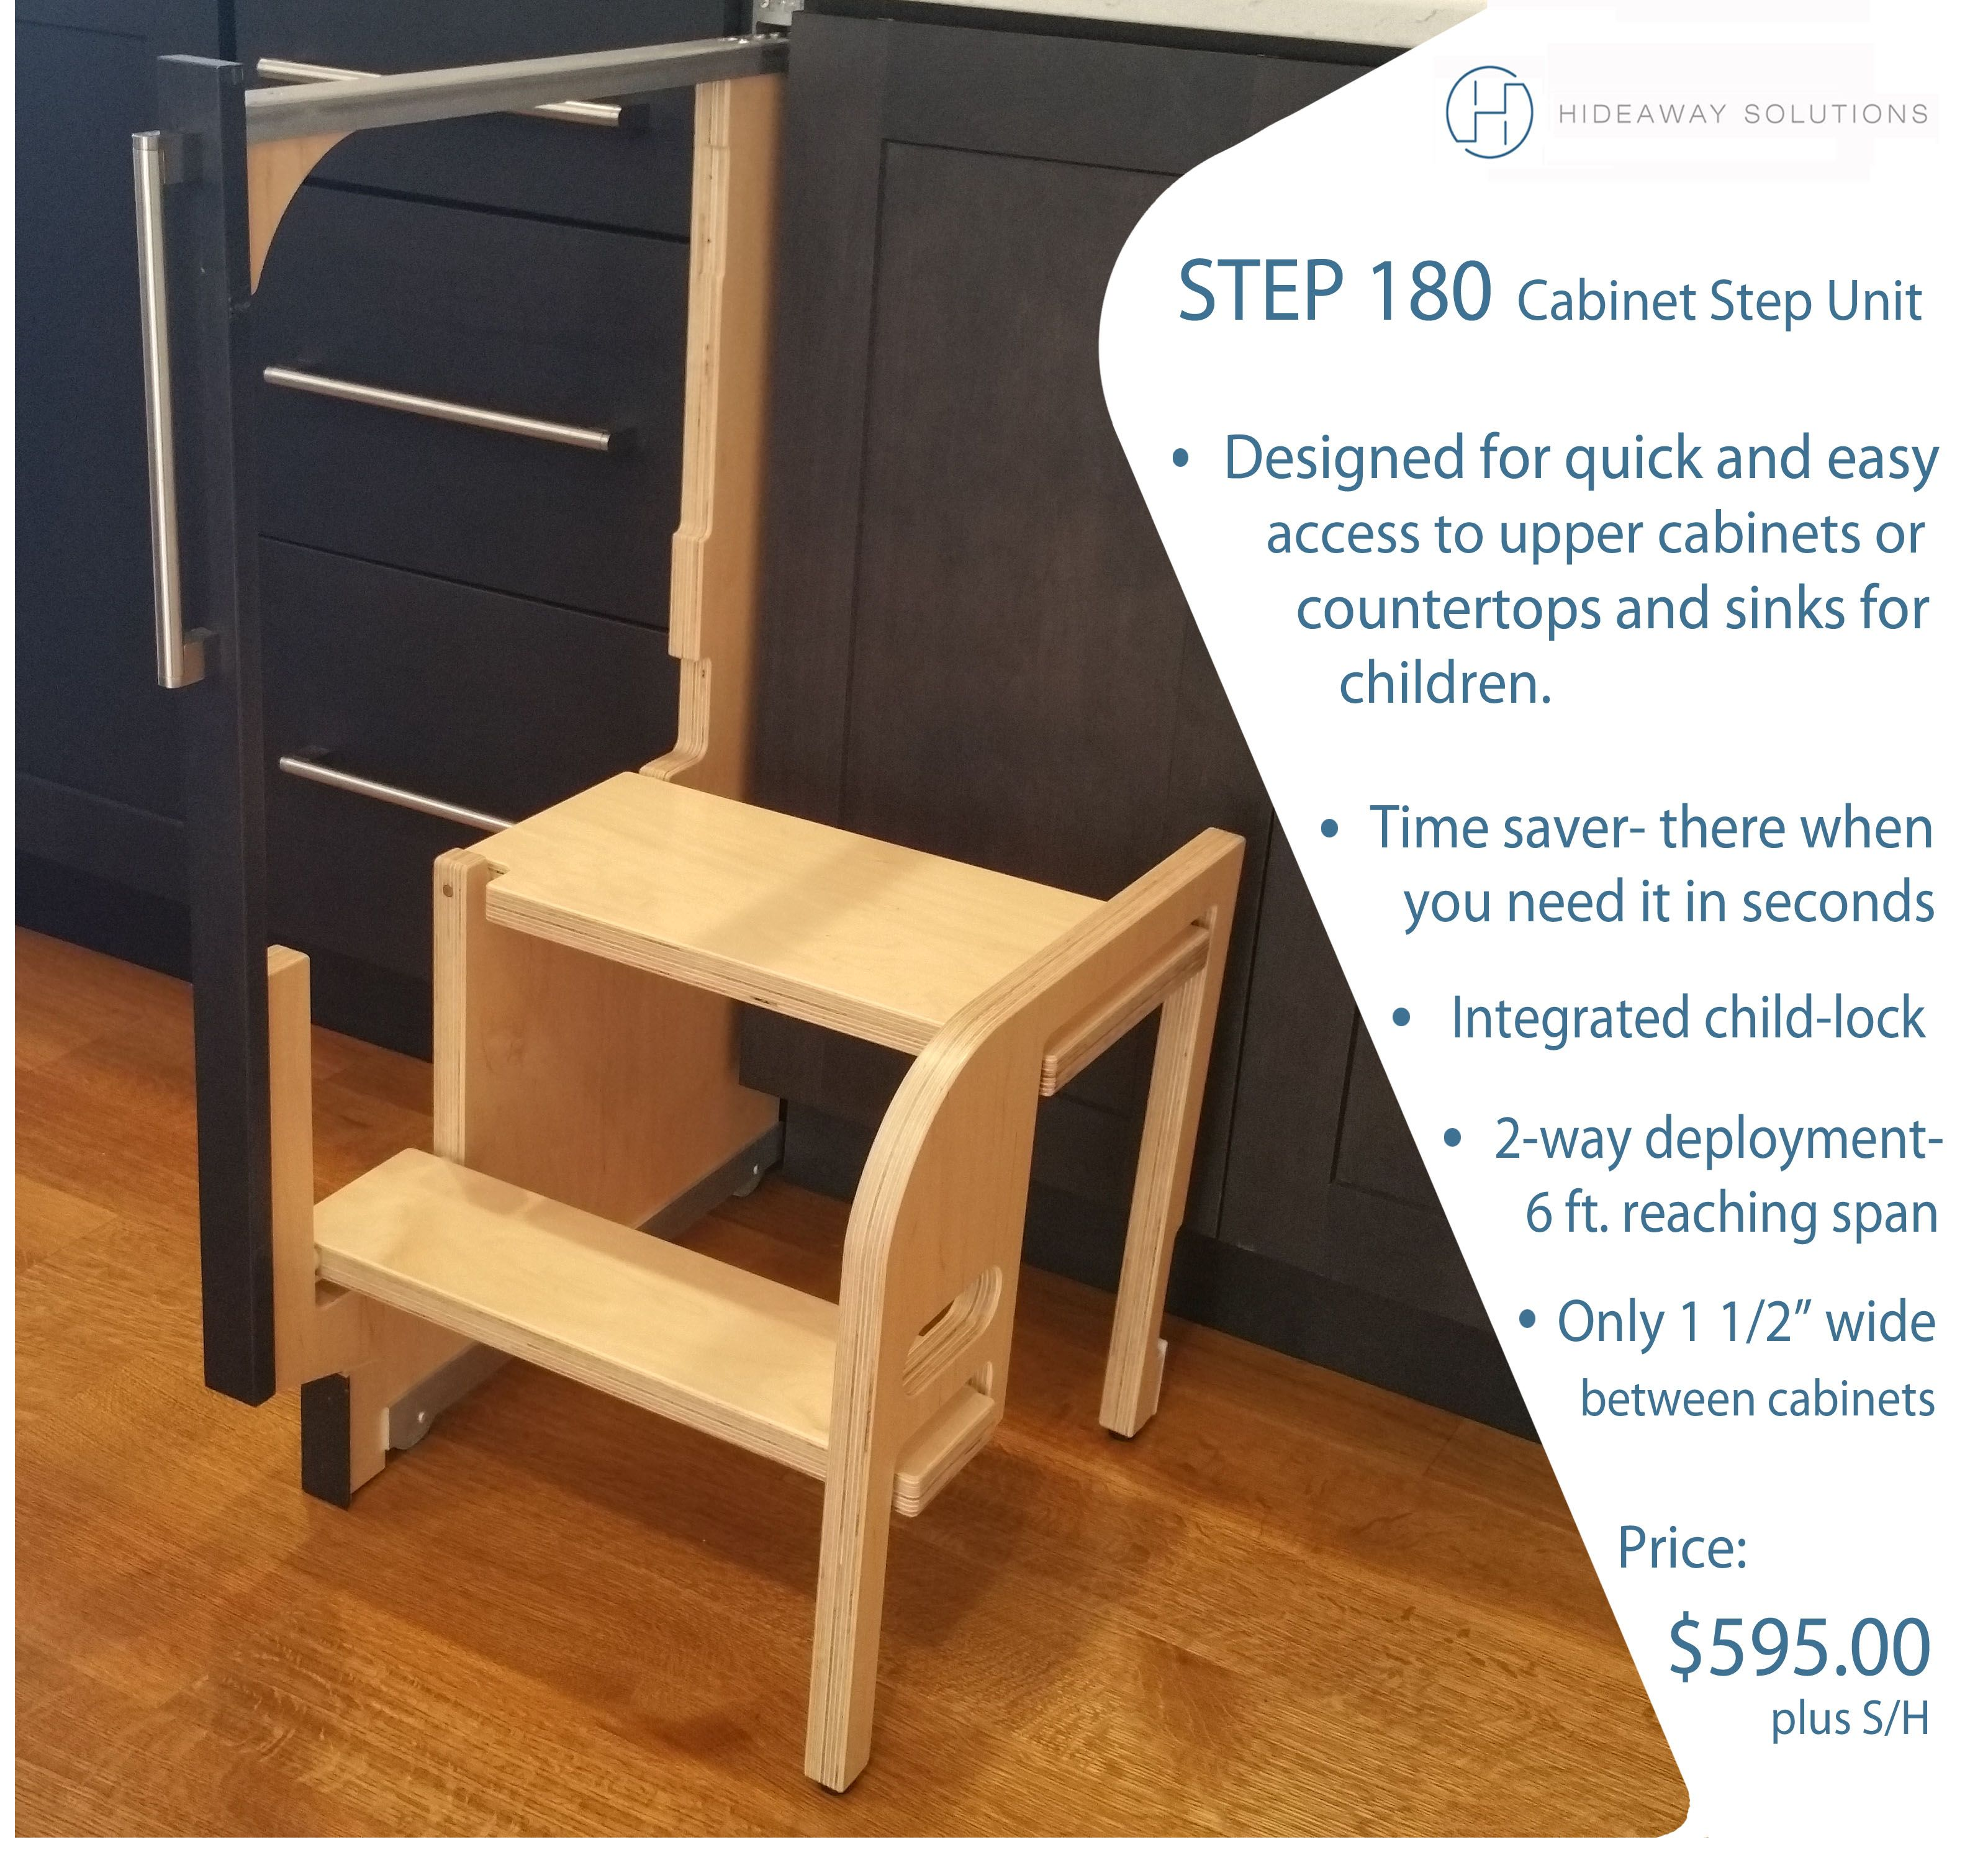 Step 180 Hideaway Solutions Step Stool Kitchen Step Stool Stool